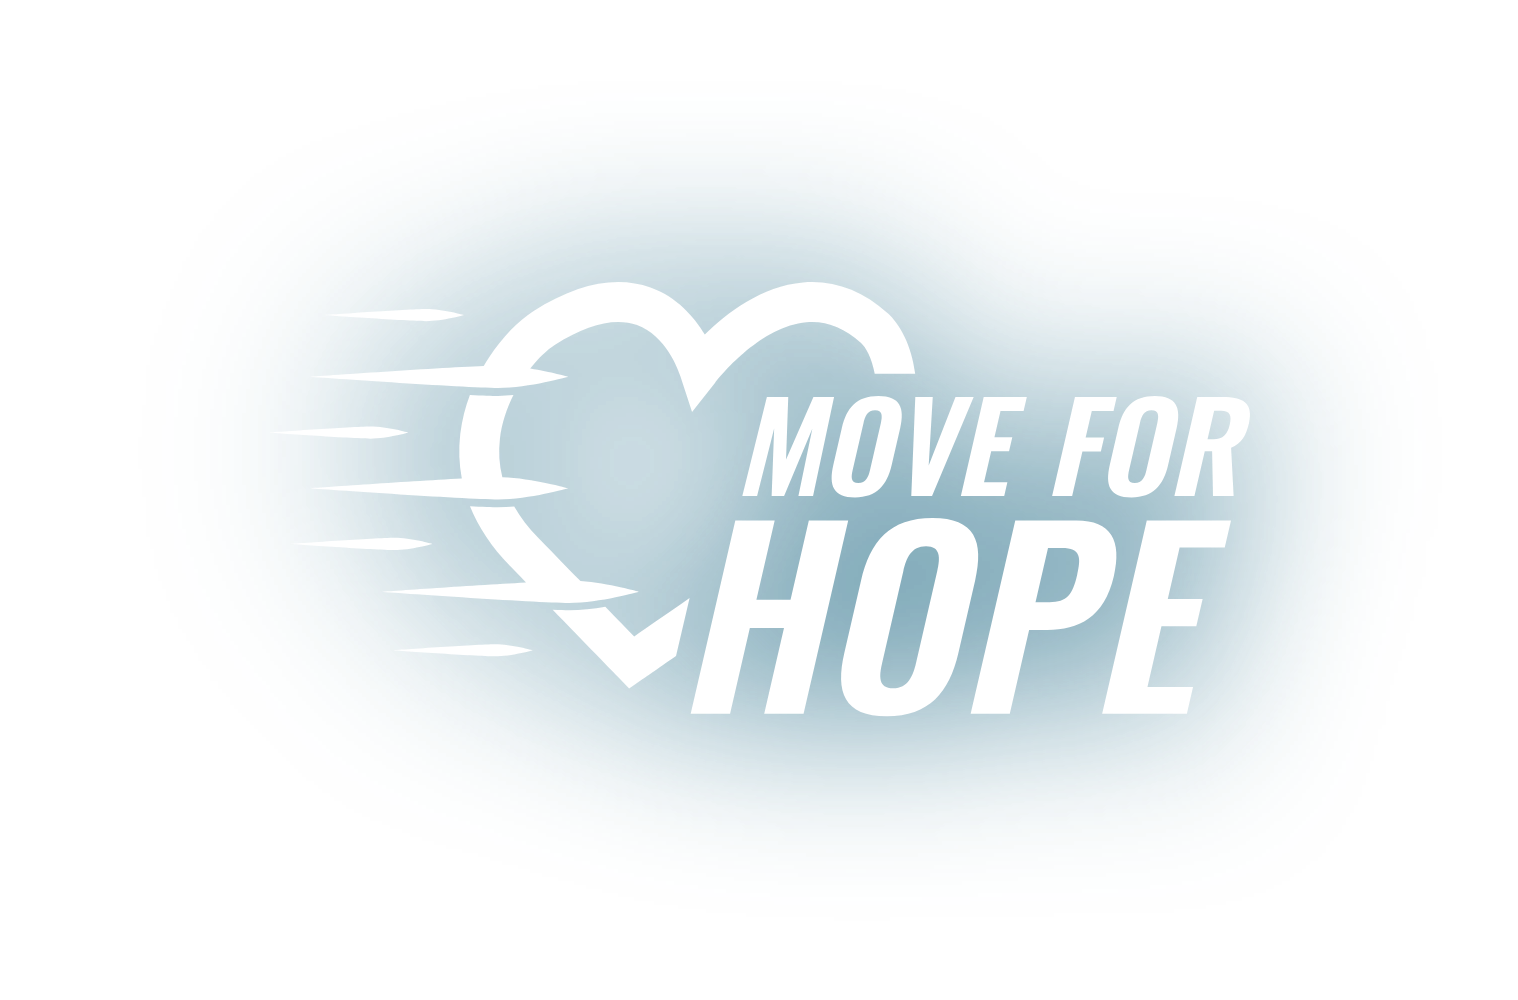 MOVE FOR HOPE